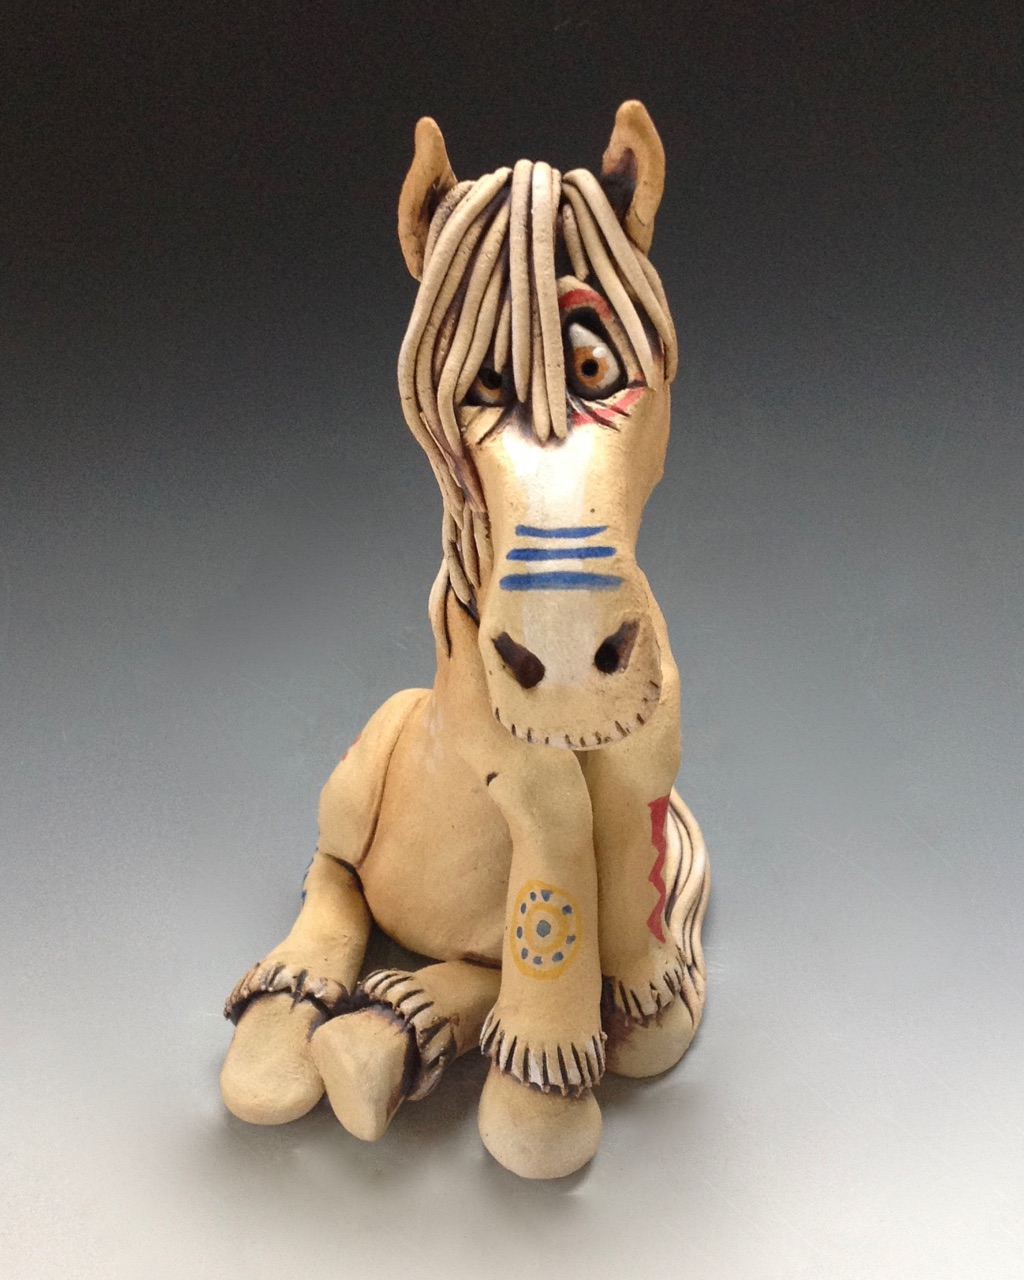 Painted American Indian Horse Sculpture Ceramic Pottery